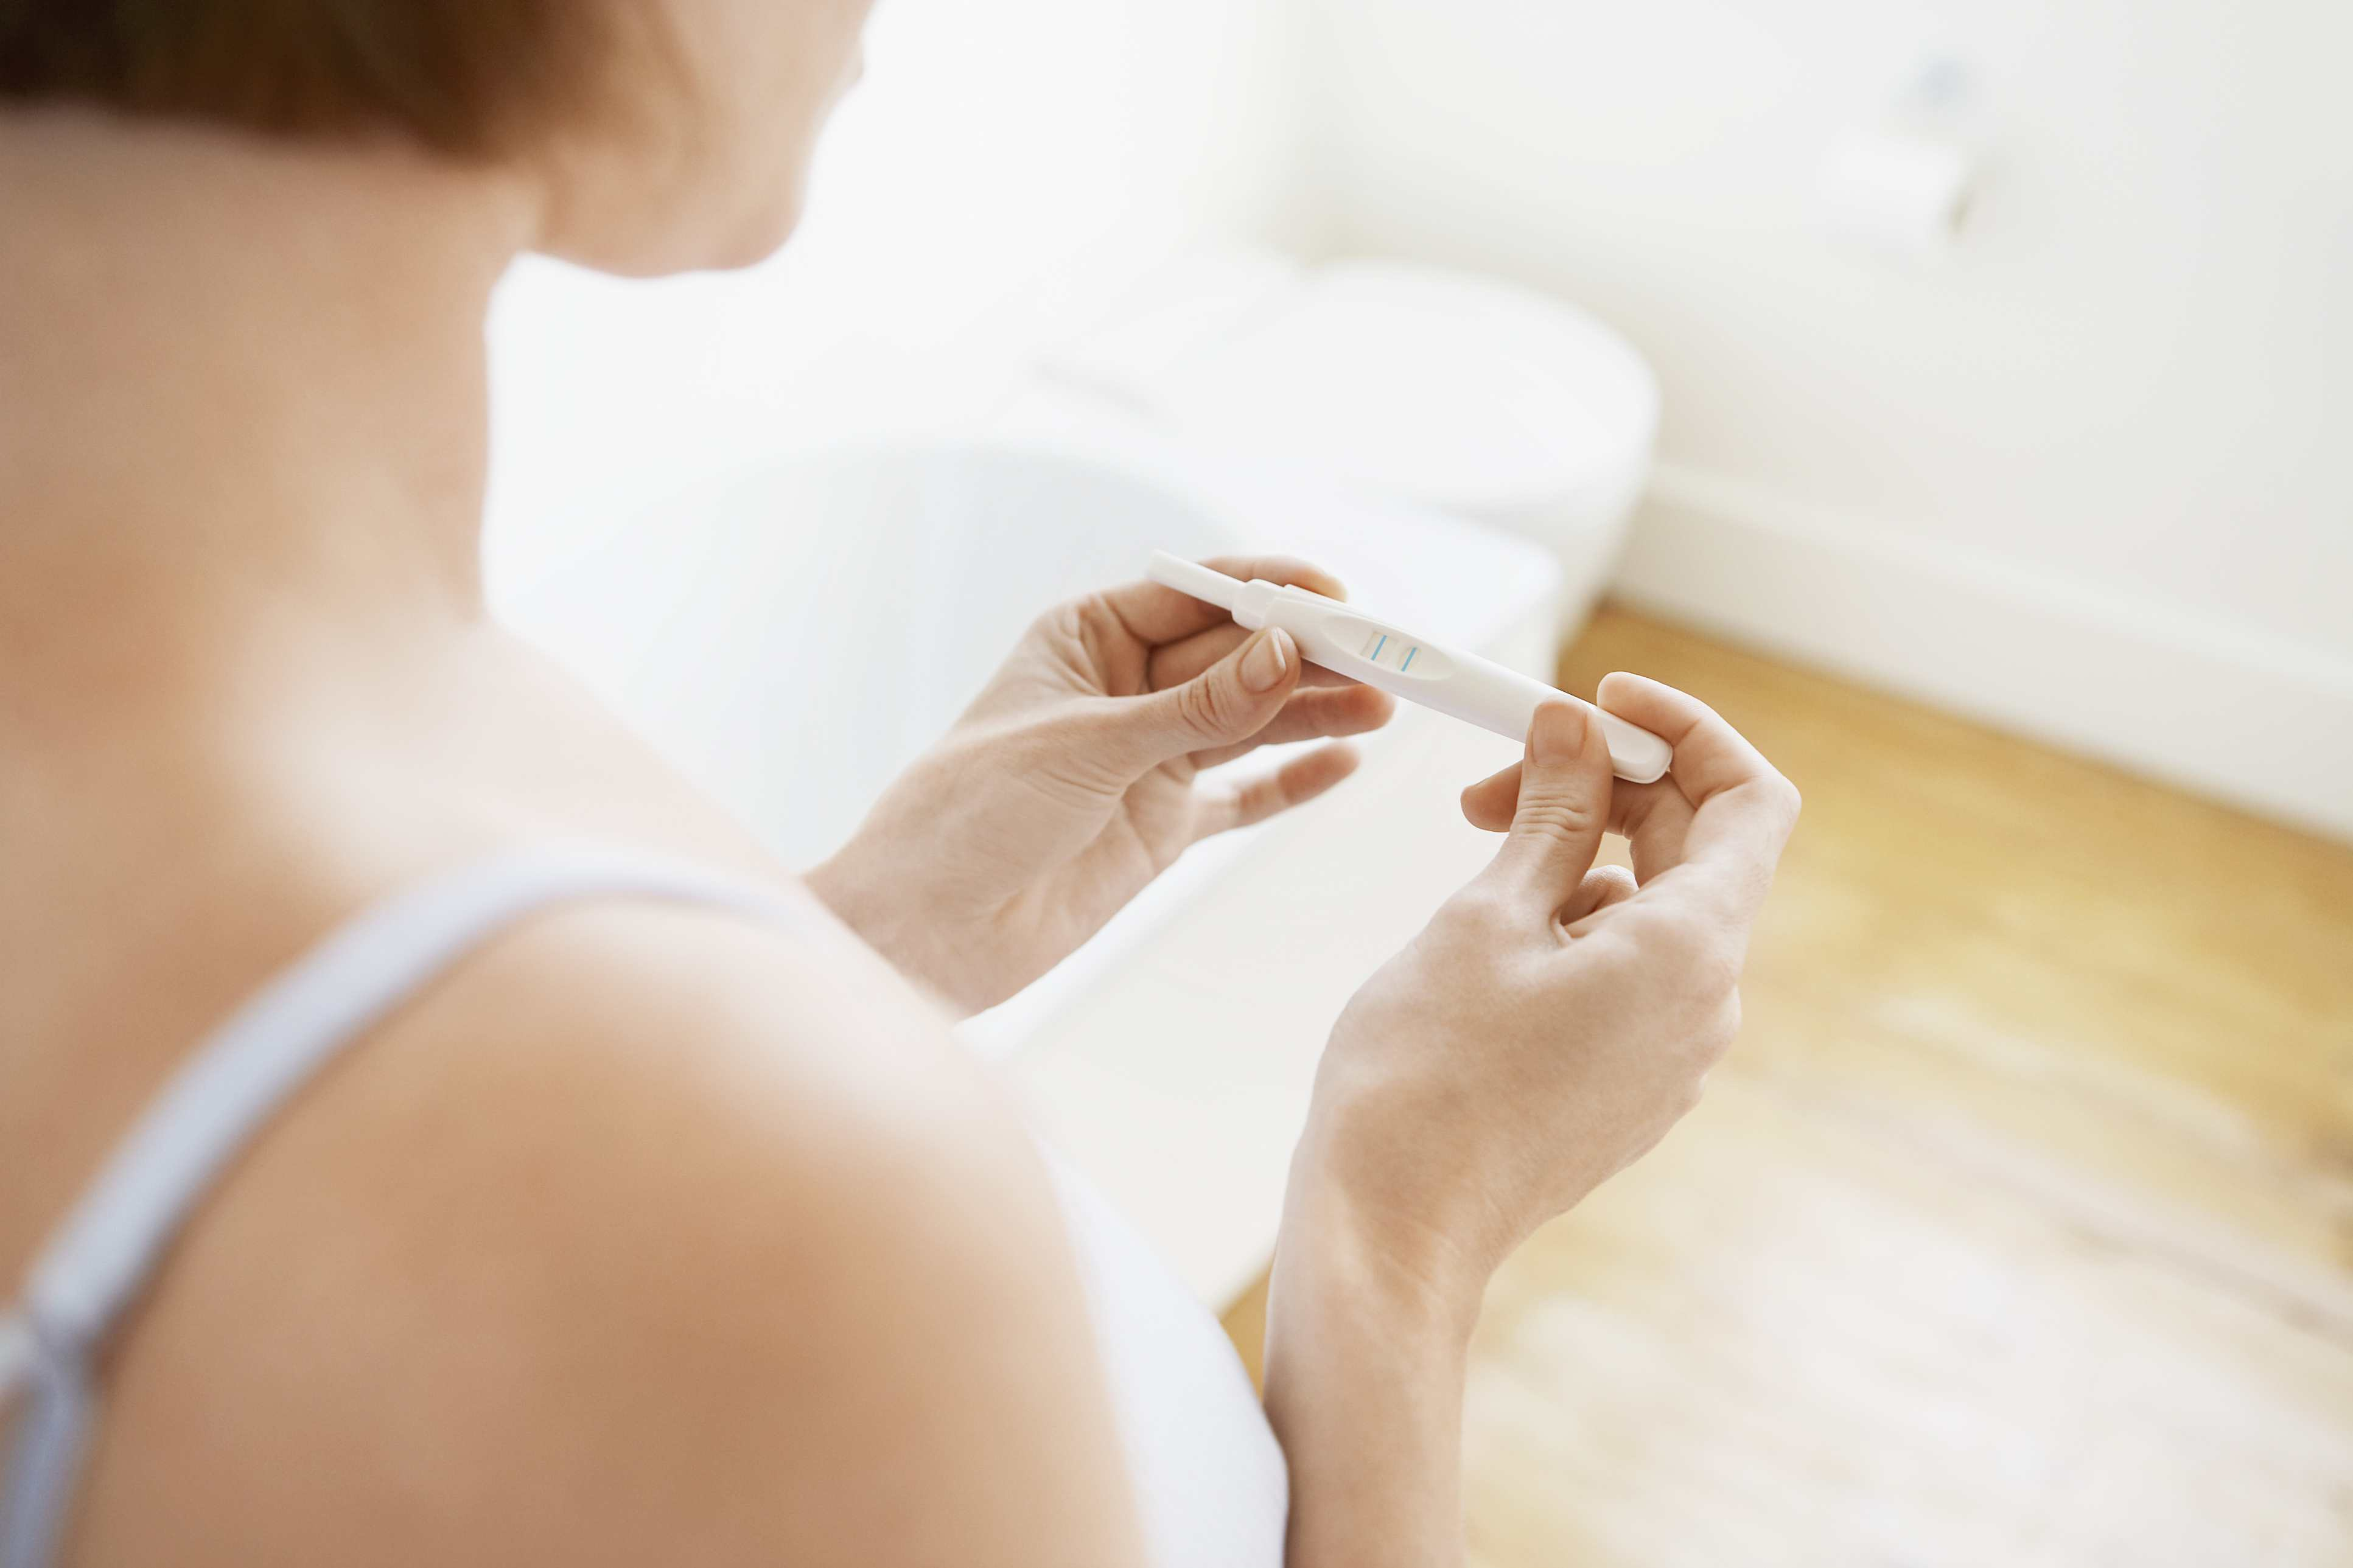 woman holding a pregnancy test